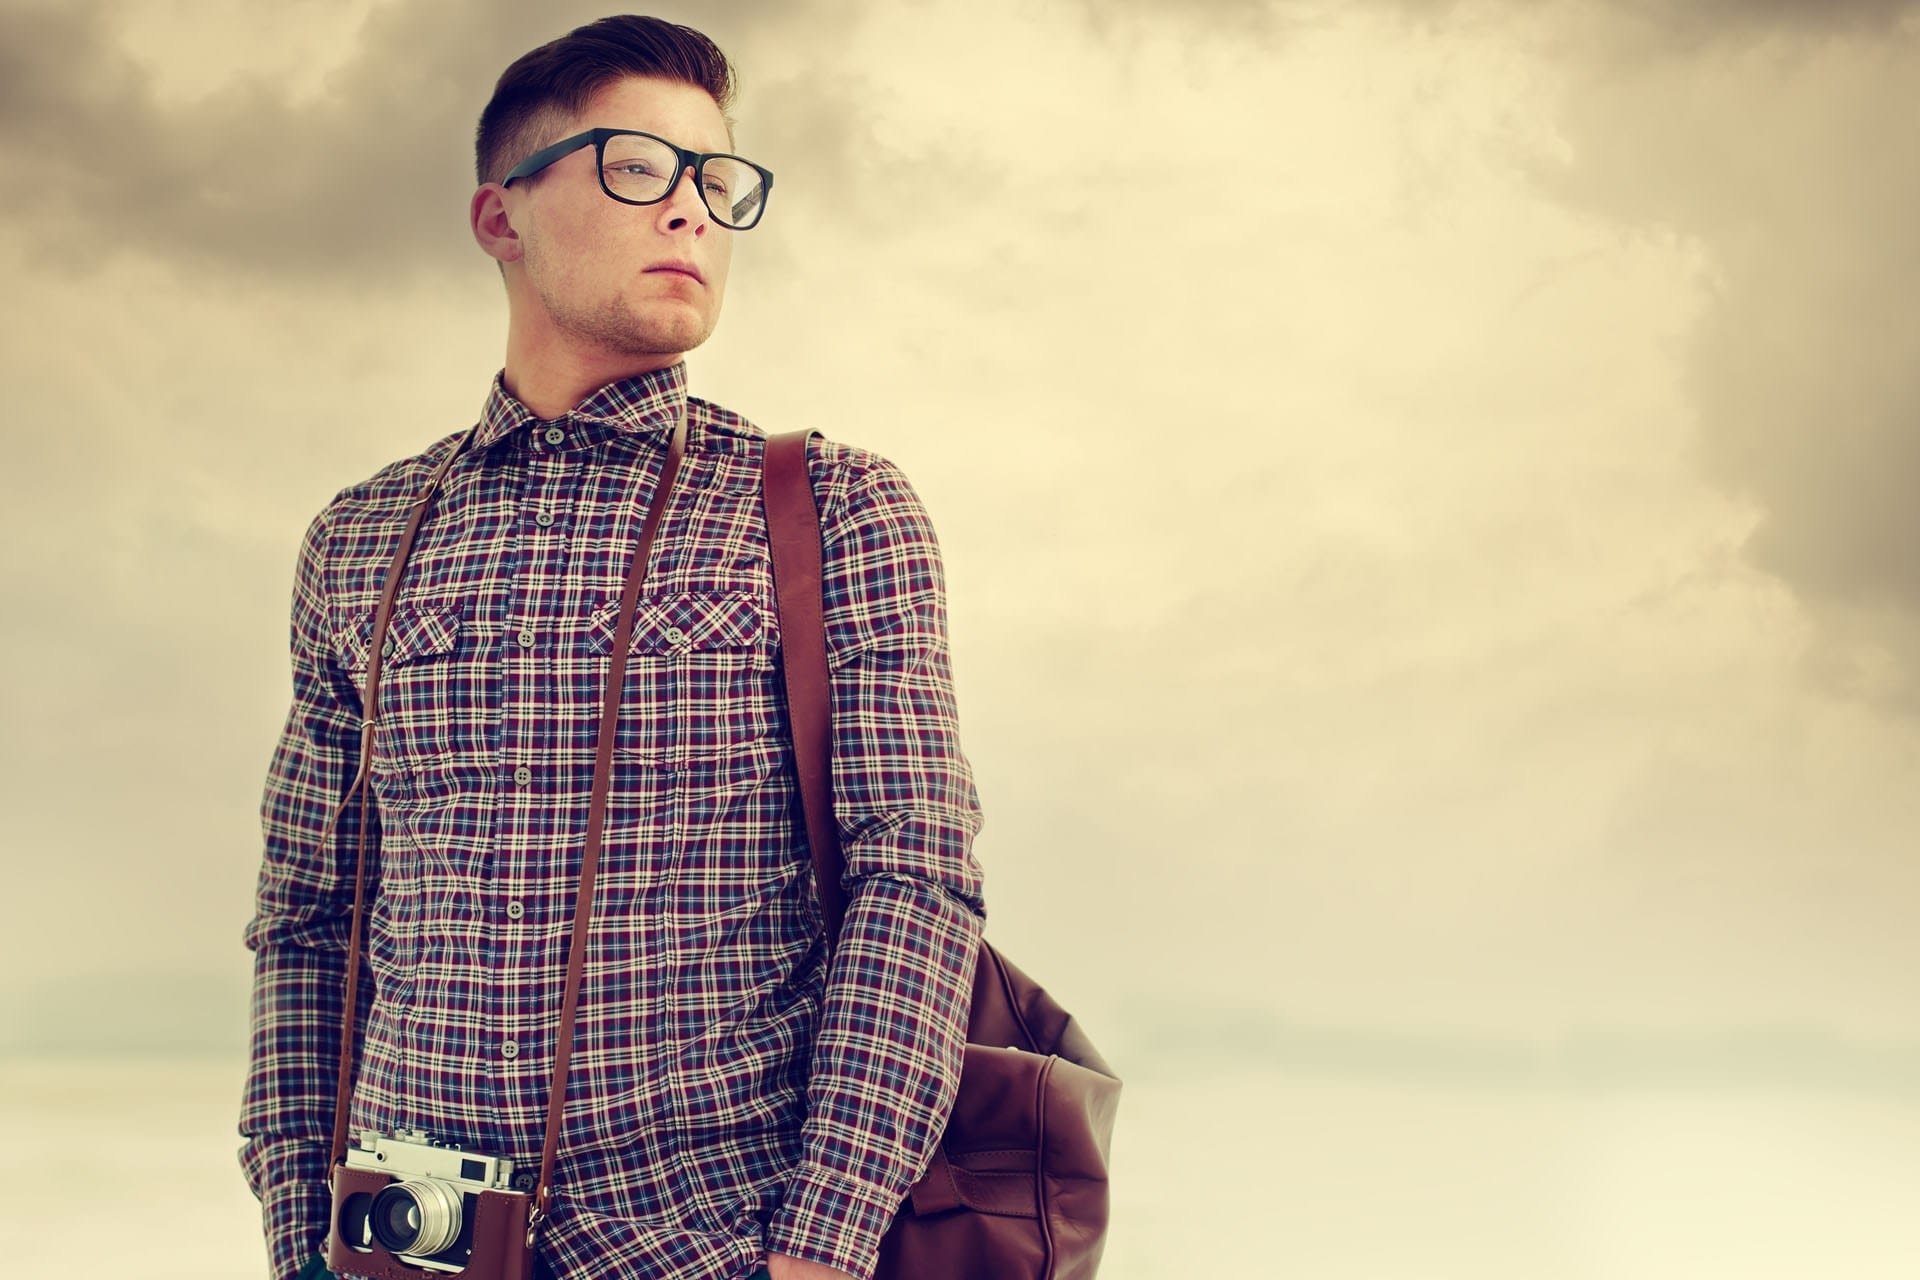 Conforming to Non-Conformity: The Decline and Fall of the Hipster Generation